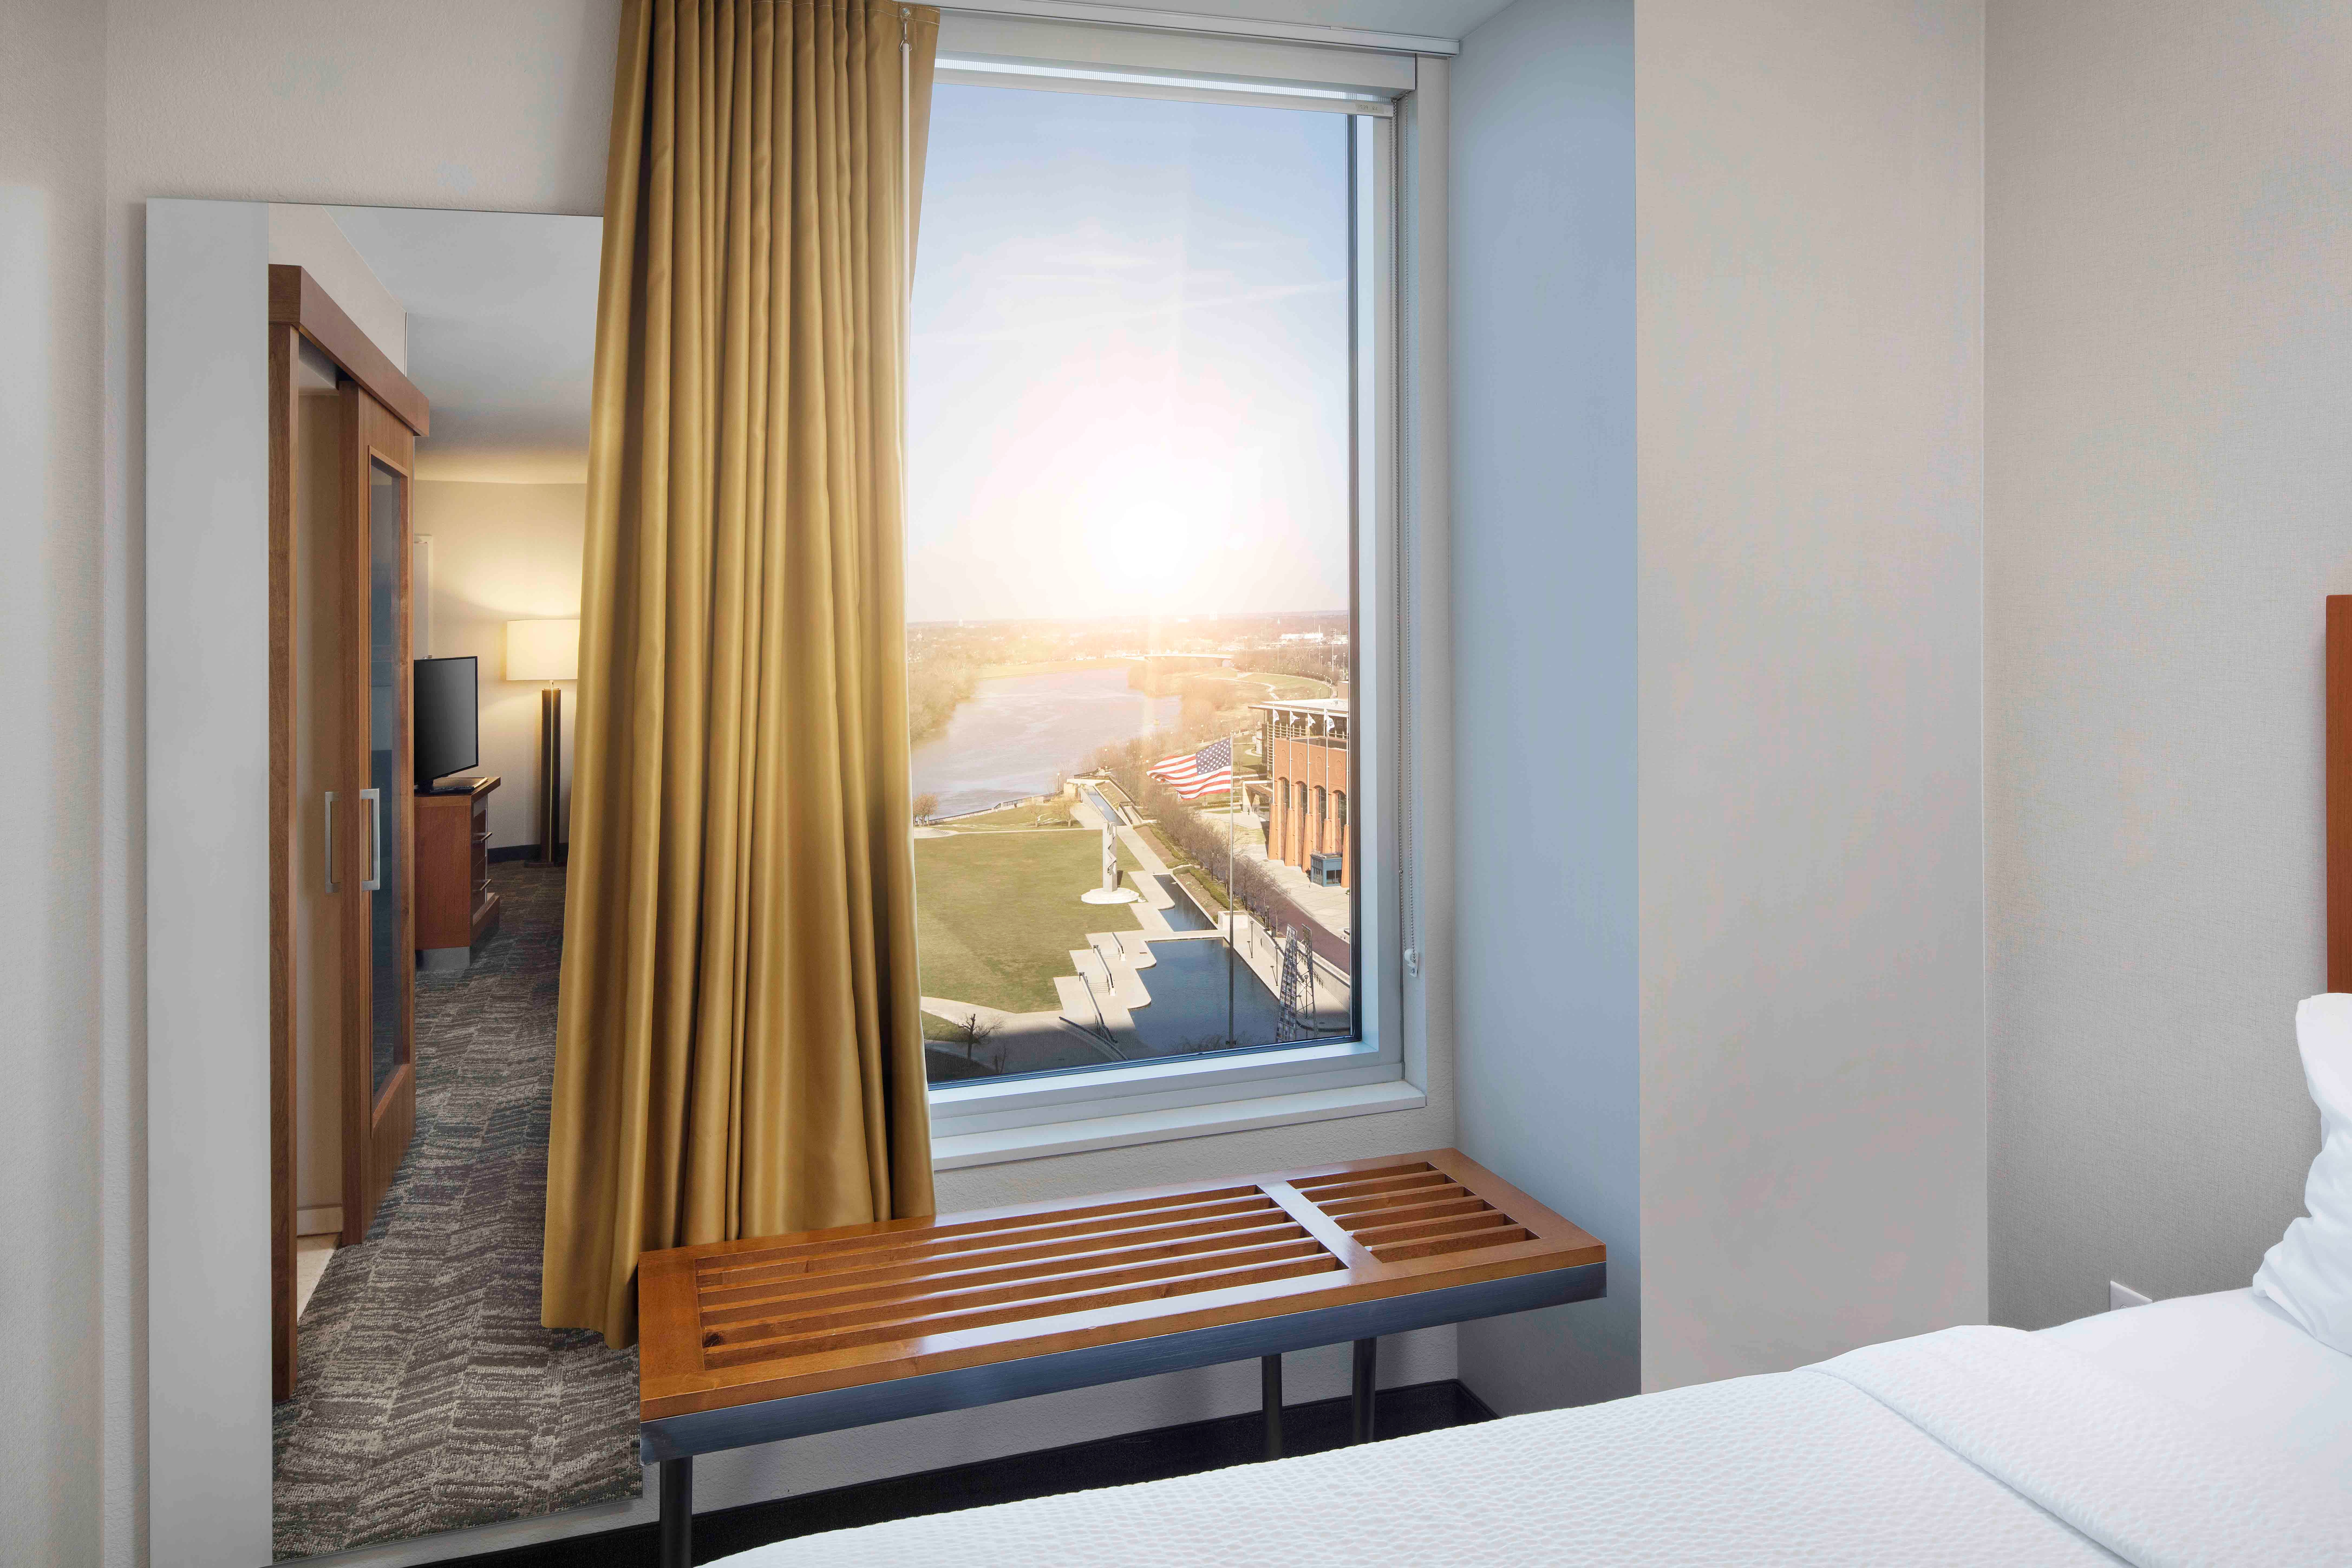 SpringHill Suites by Marriott Indianapolis Downtown image 19